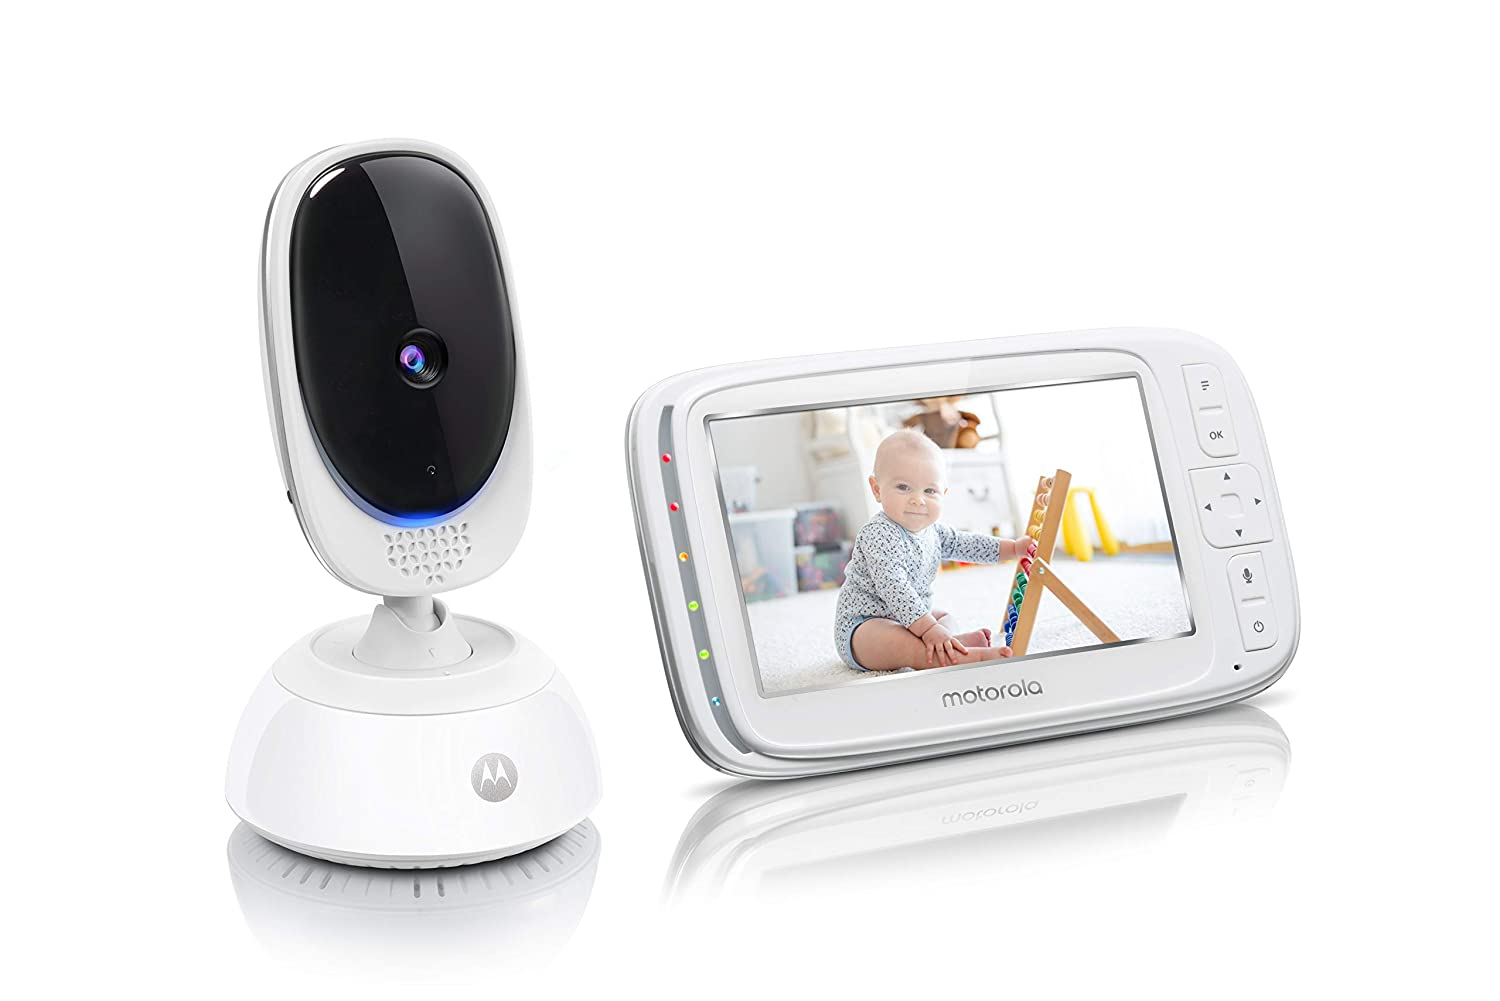 Motorola Comfort75 Video Baby Monitor - Infant Wireless Camera with Remote Pan, Digital Zoom, Temperature Sensor - 5 Inch LCD Color Screen Display with Two-Way Intercom, Night Vision - 1000ft Range